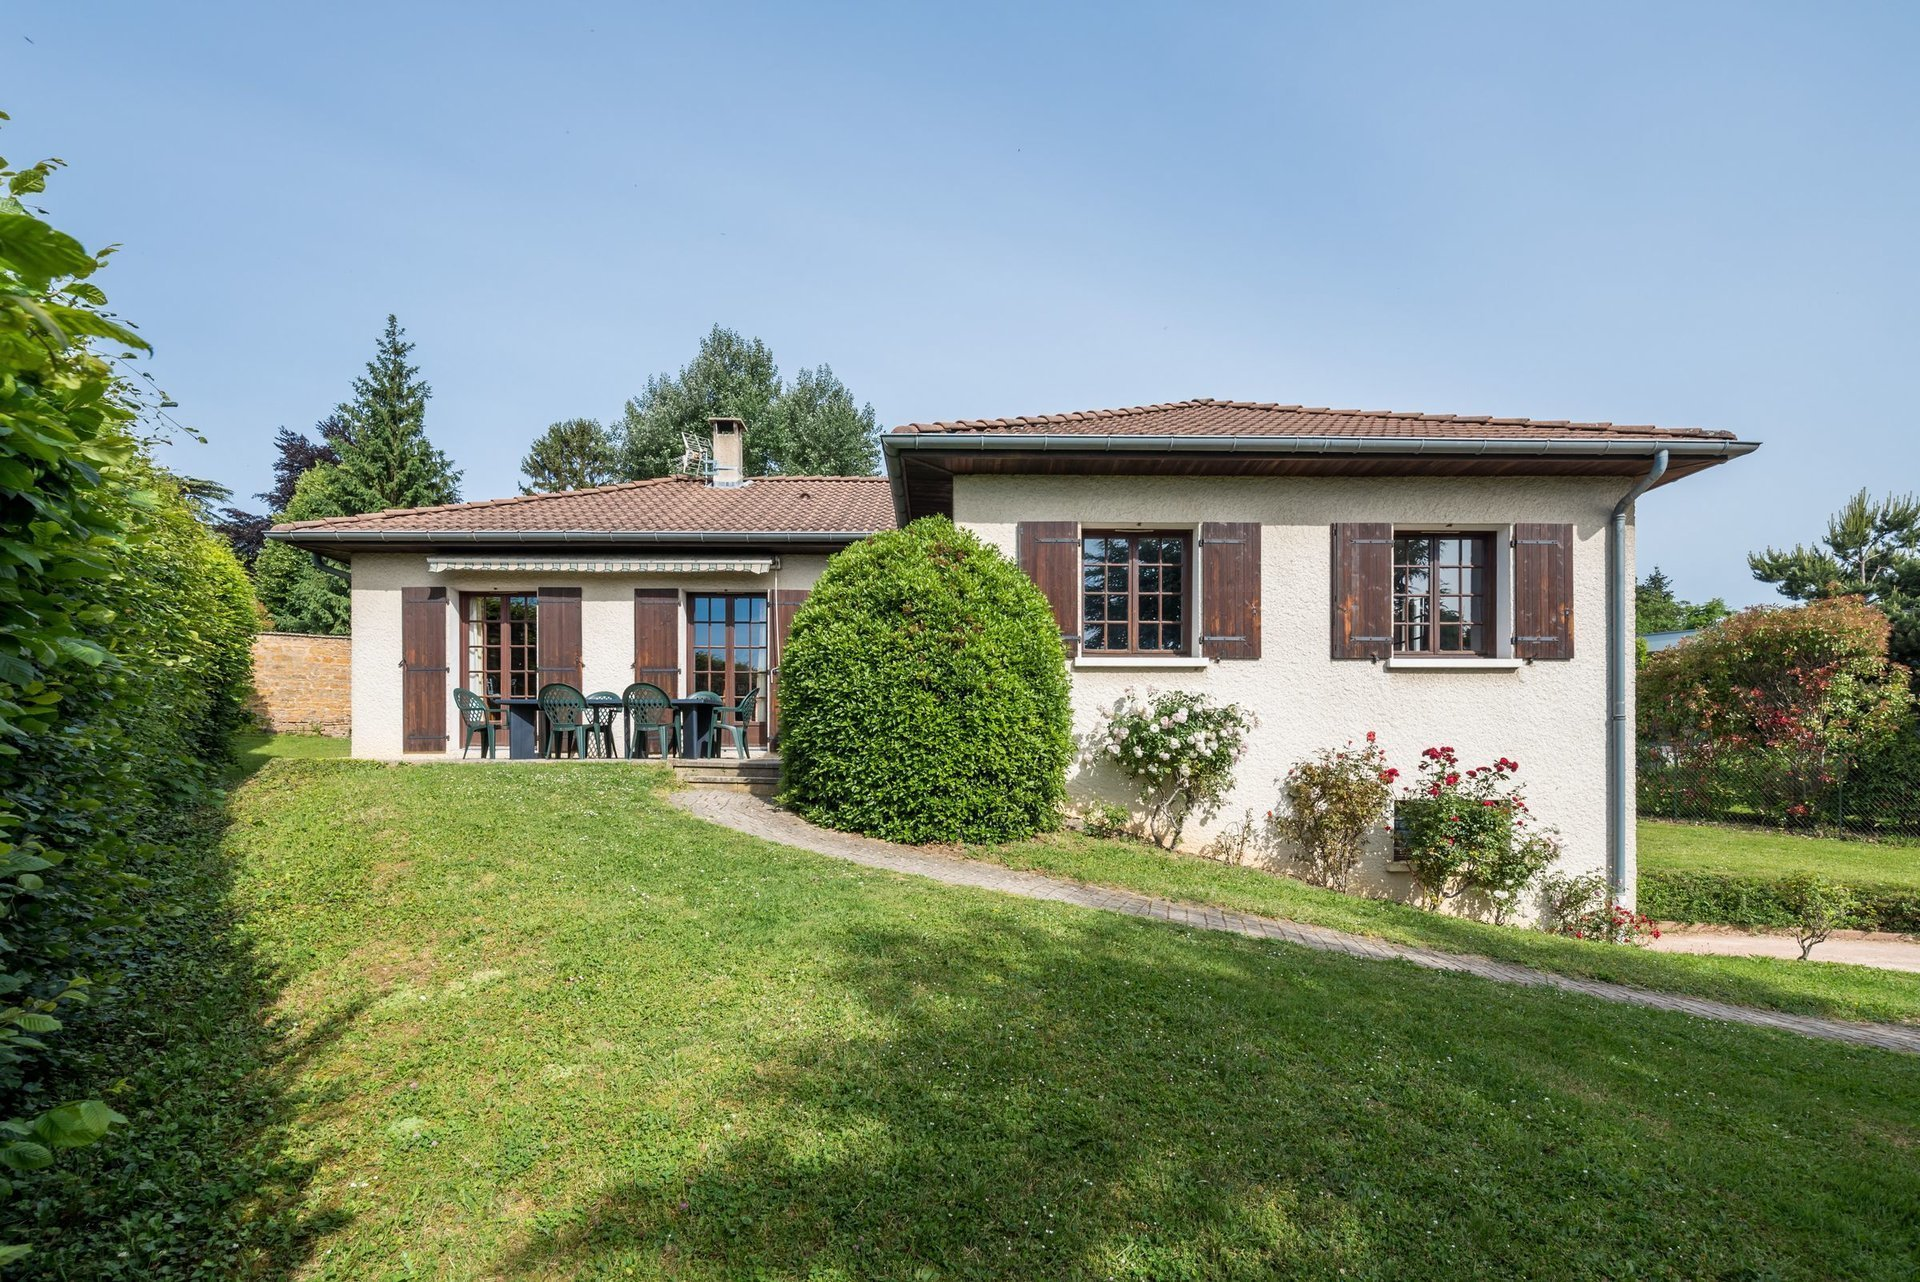 EXCLUSIVITE - Maison - Saint Cyr au Mont d'or